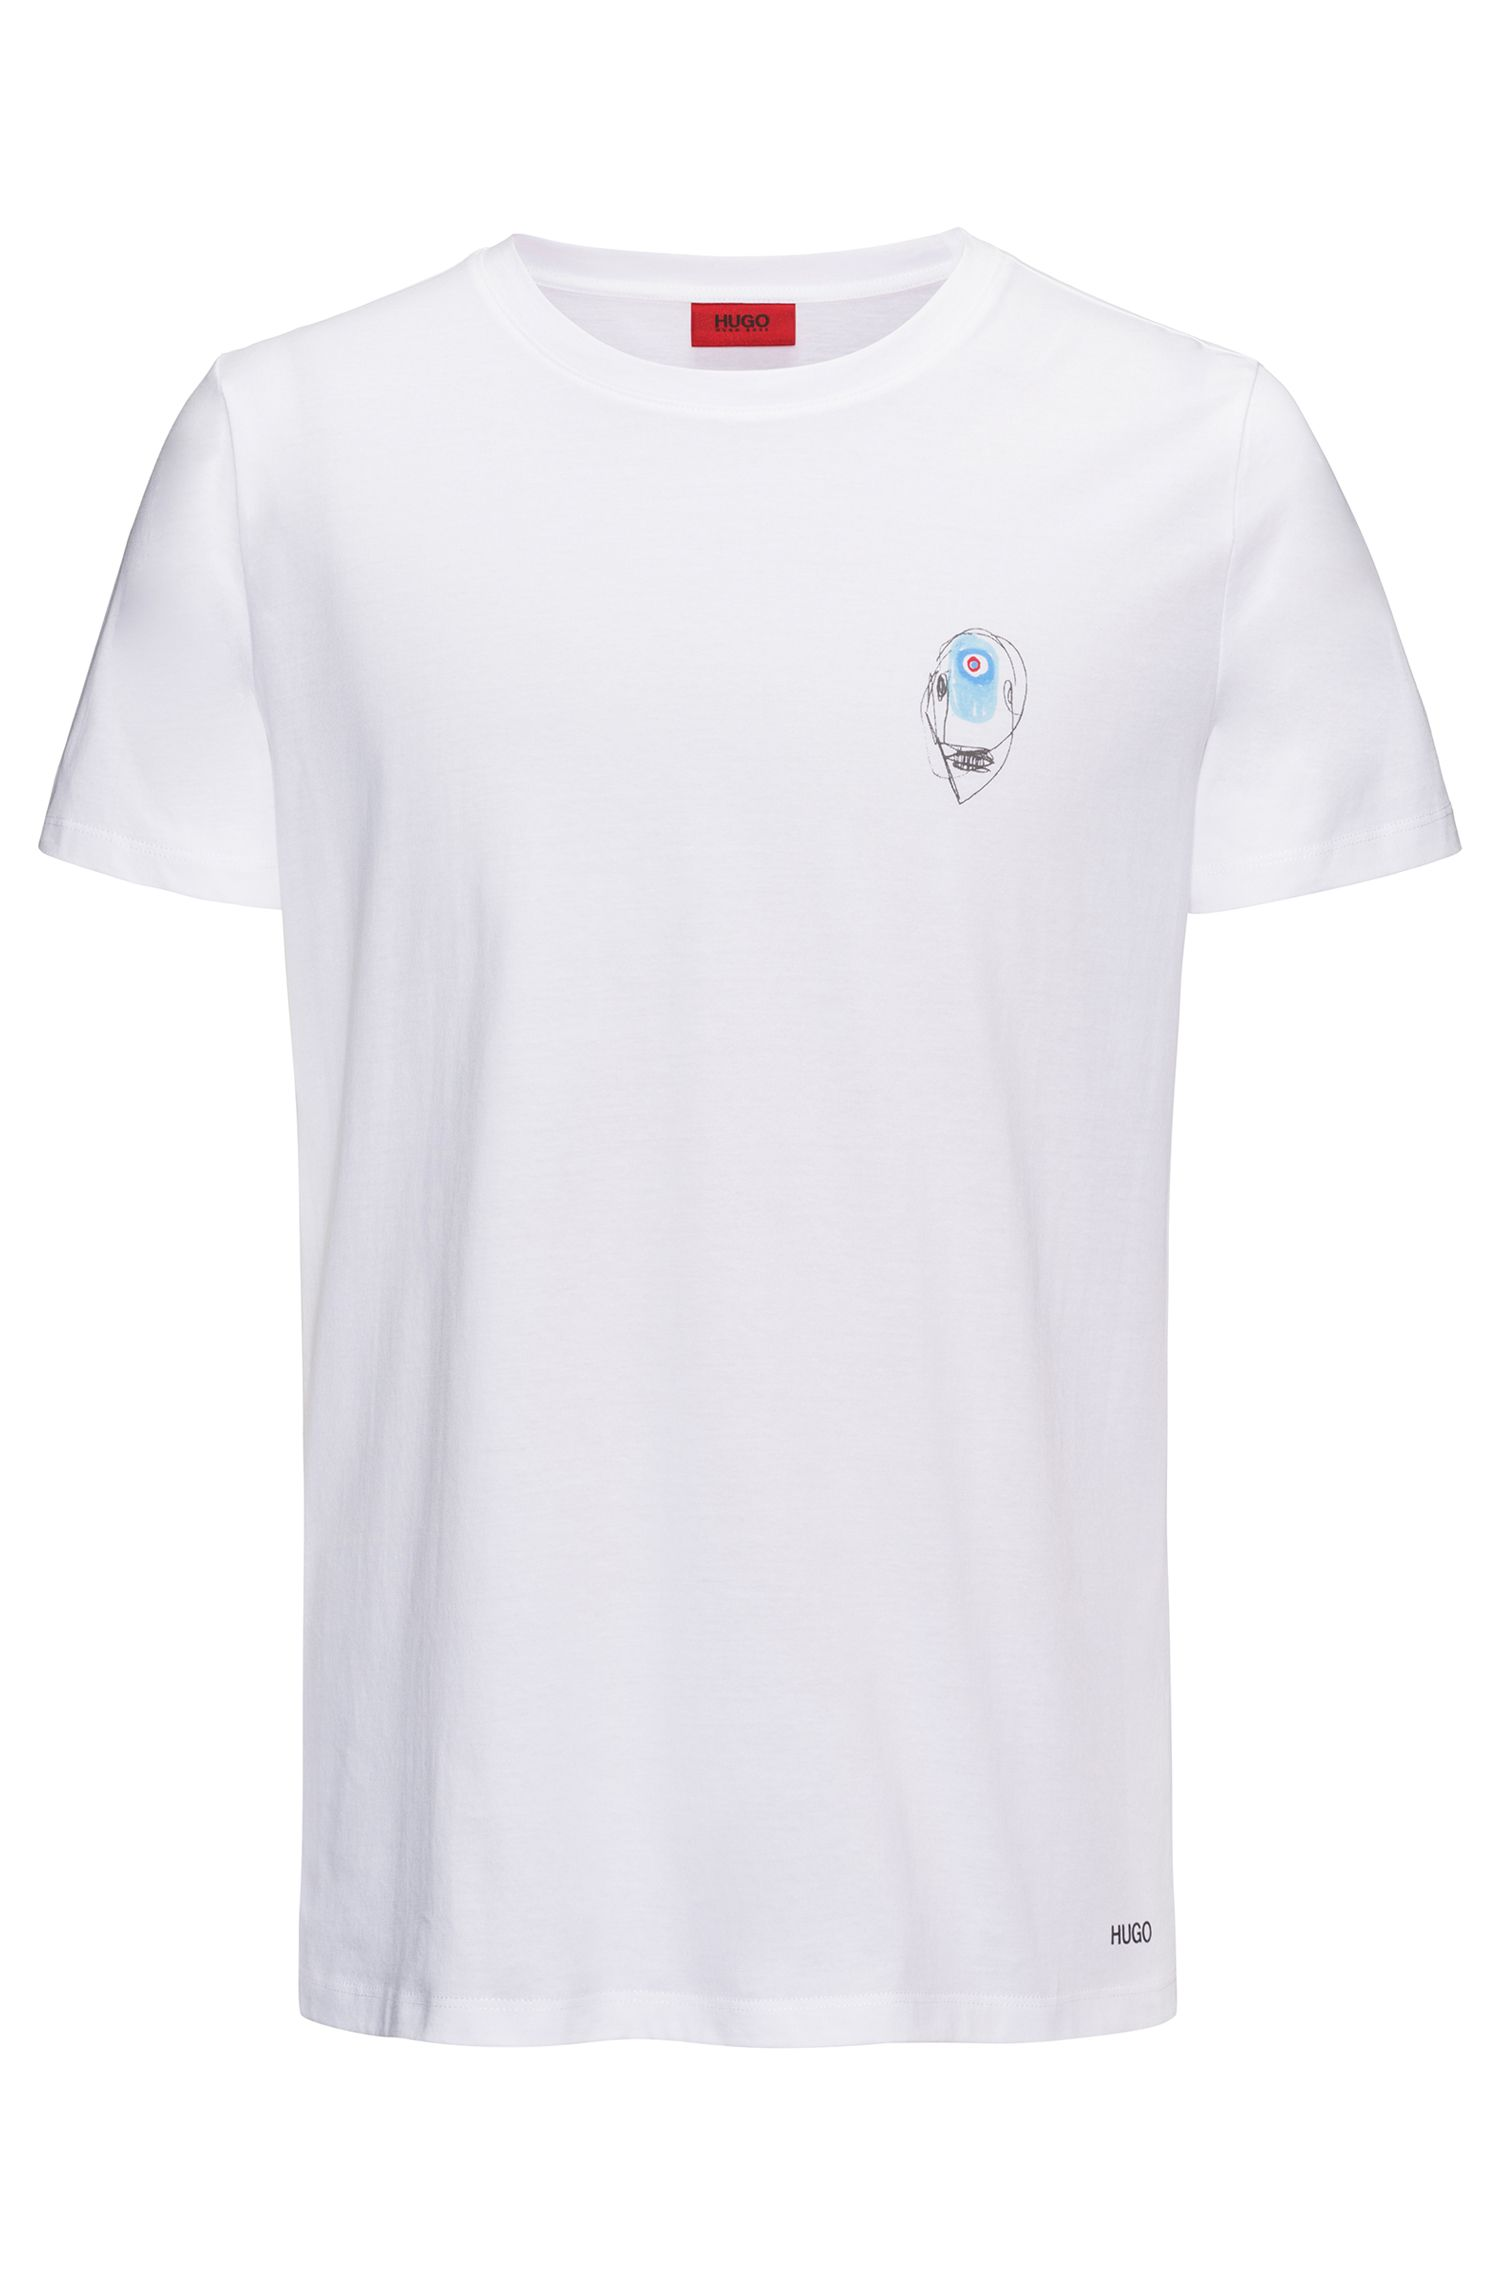 Abstract Cotton Graphic T-Shirt   Dirit , White